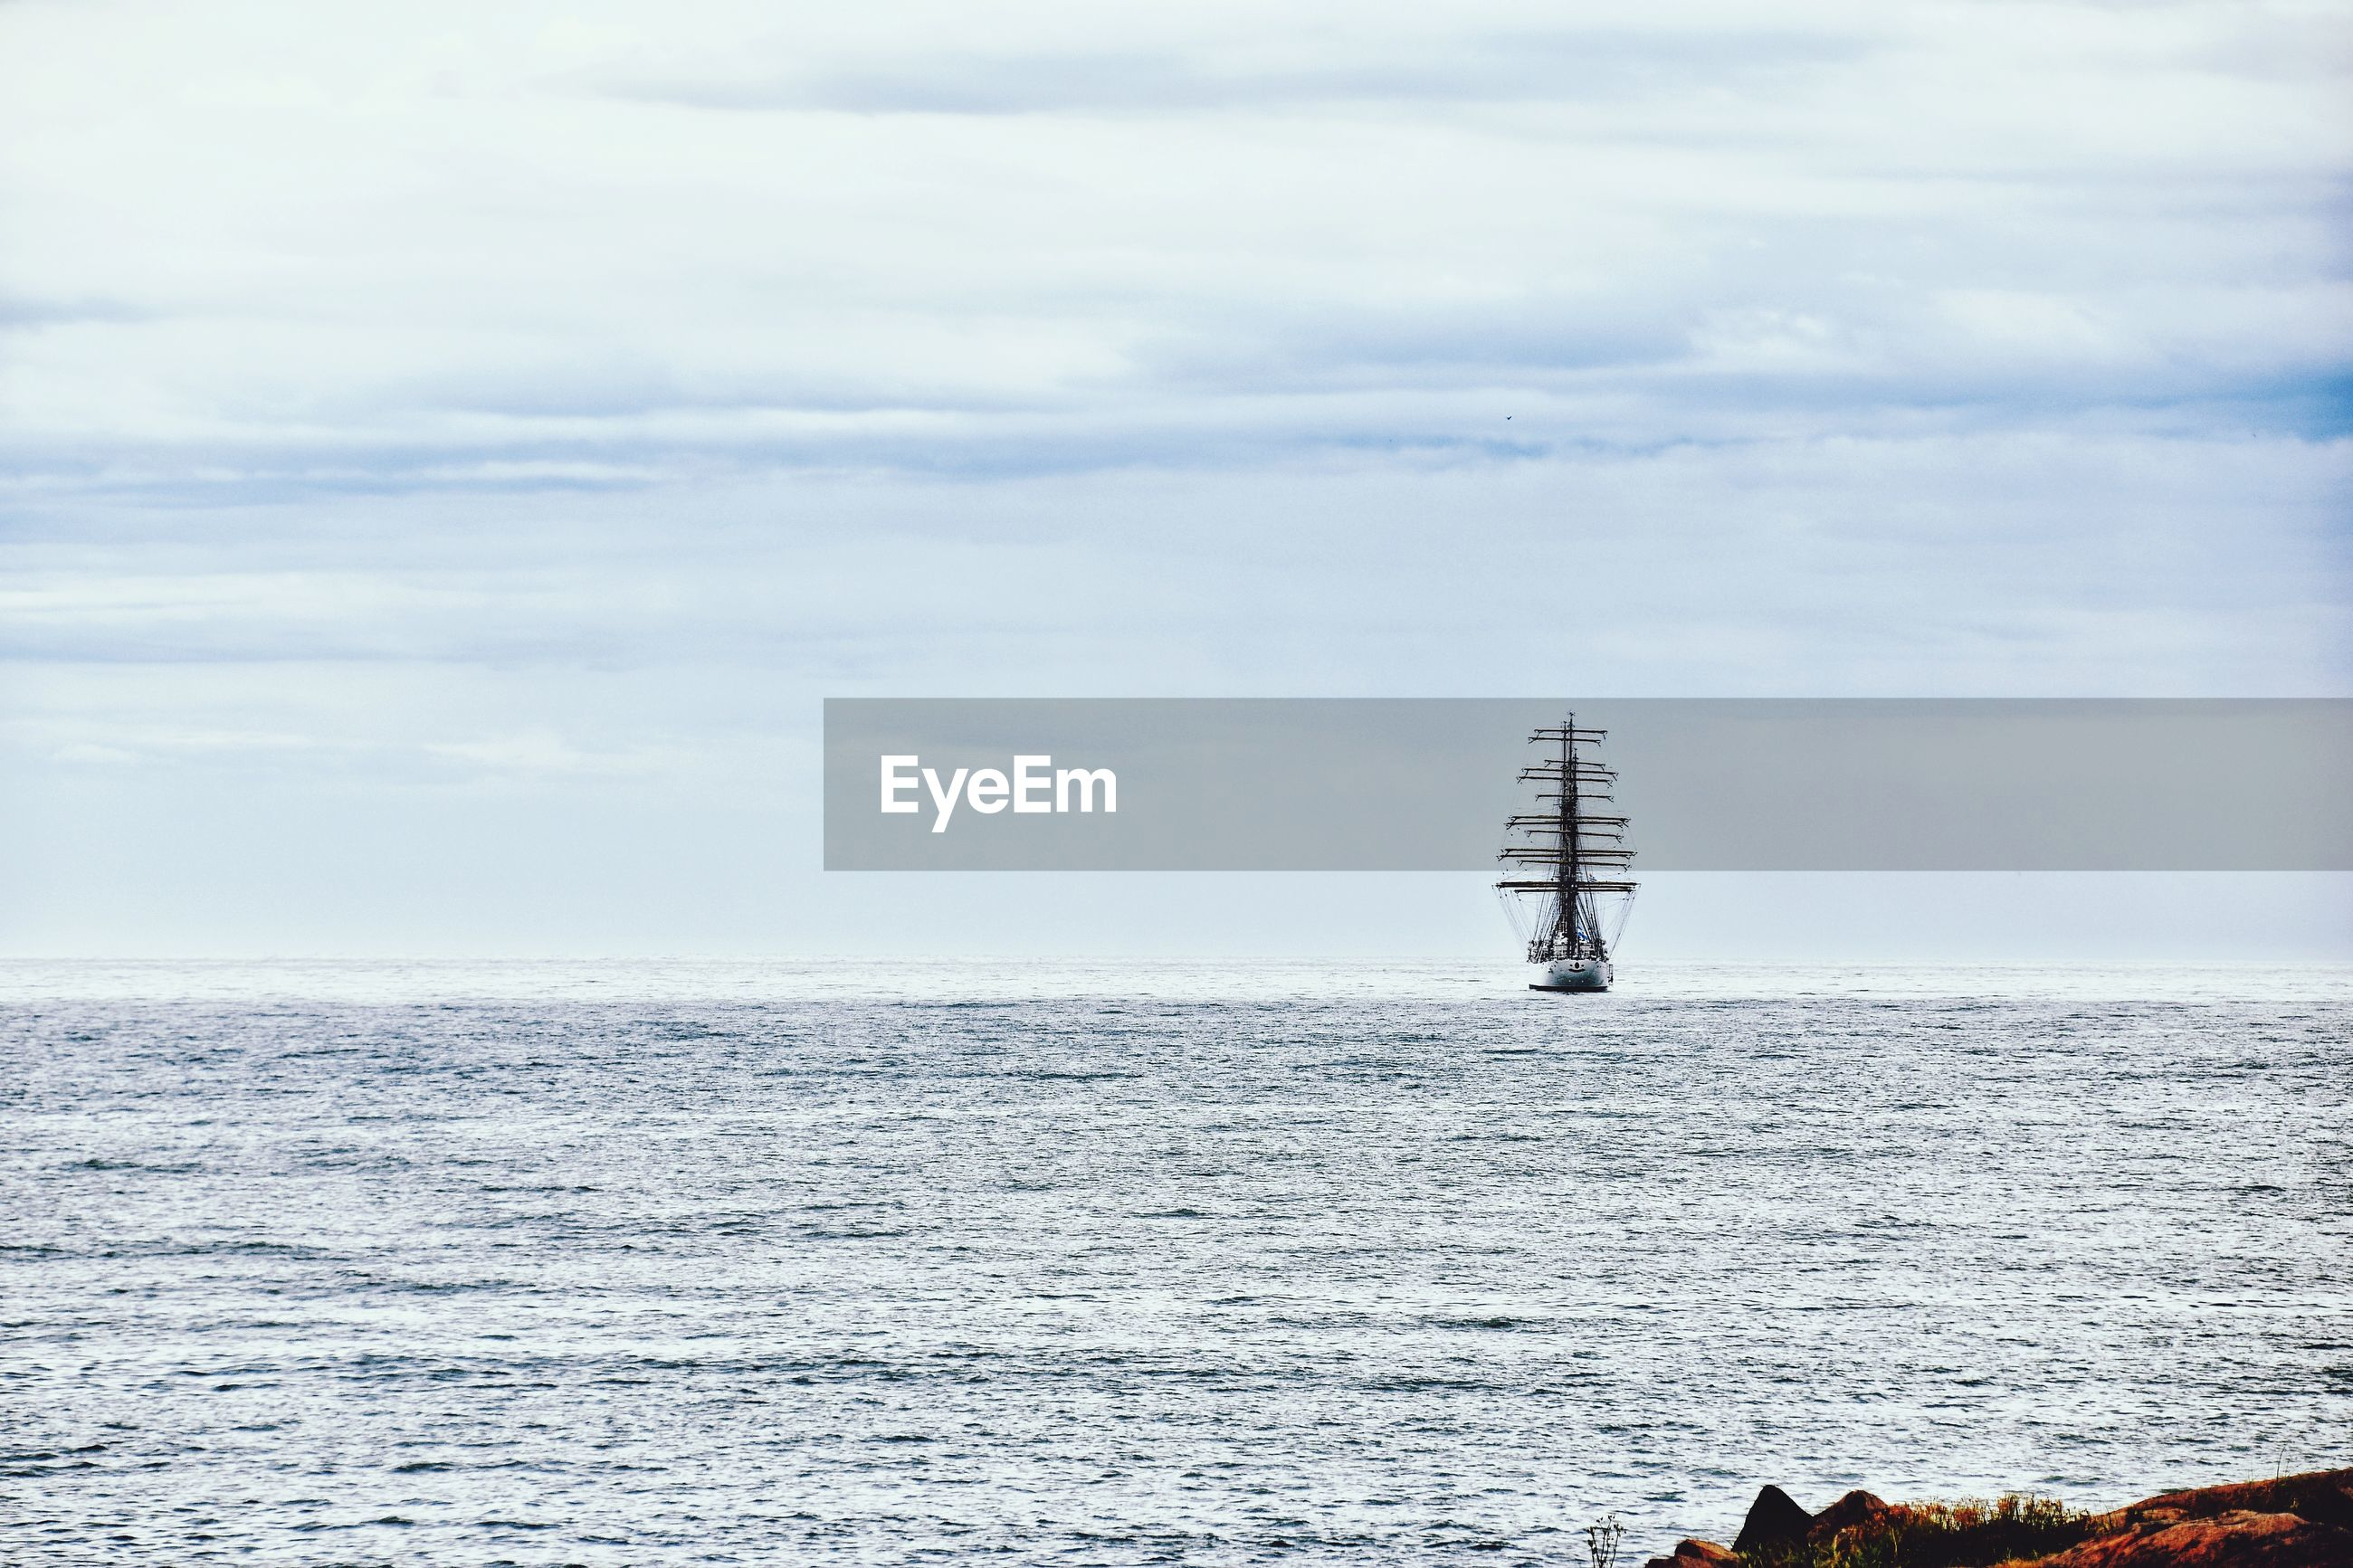 SAILBOAT ON SEA BY LIGHTHOUSE AGAINST SKY